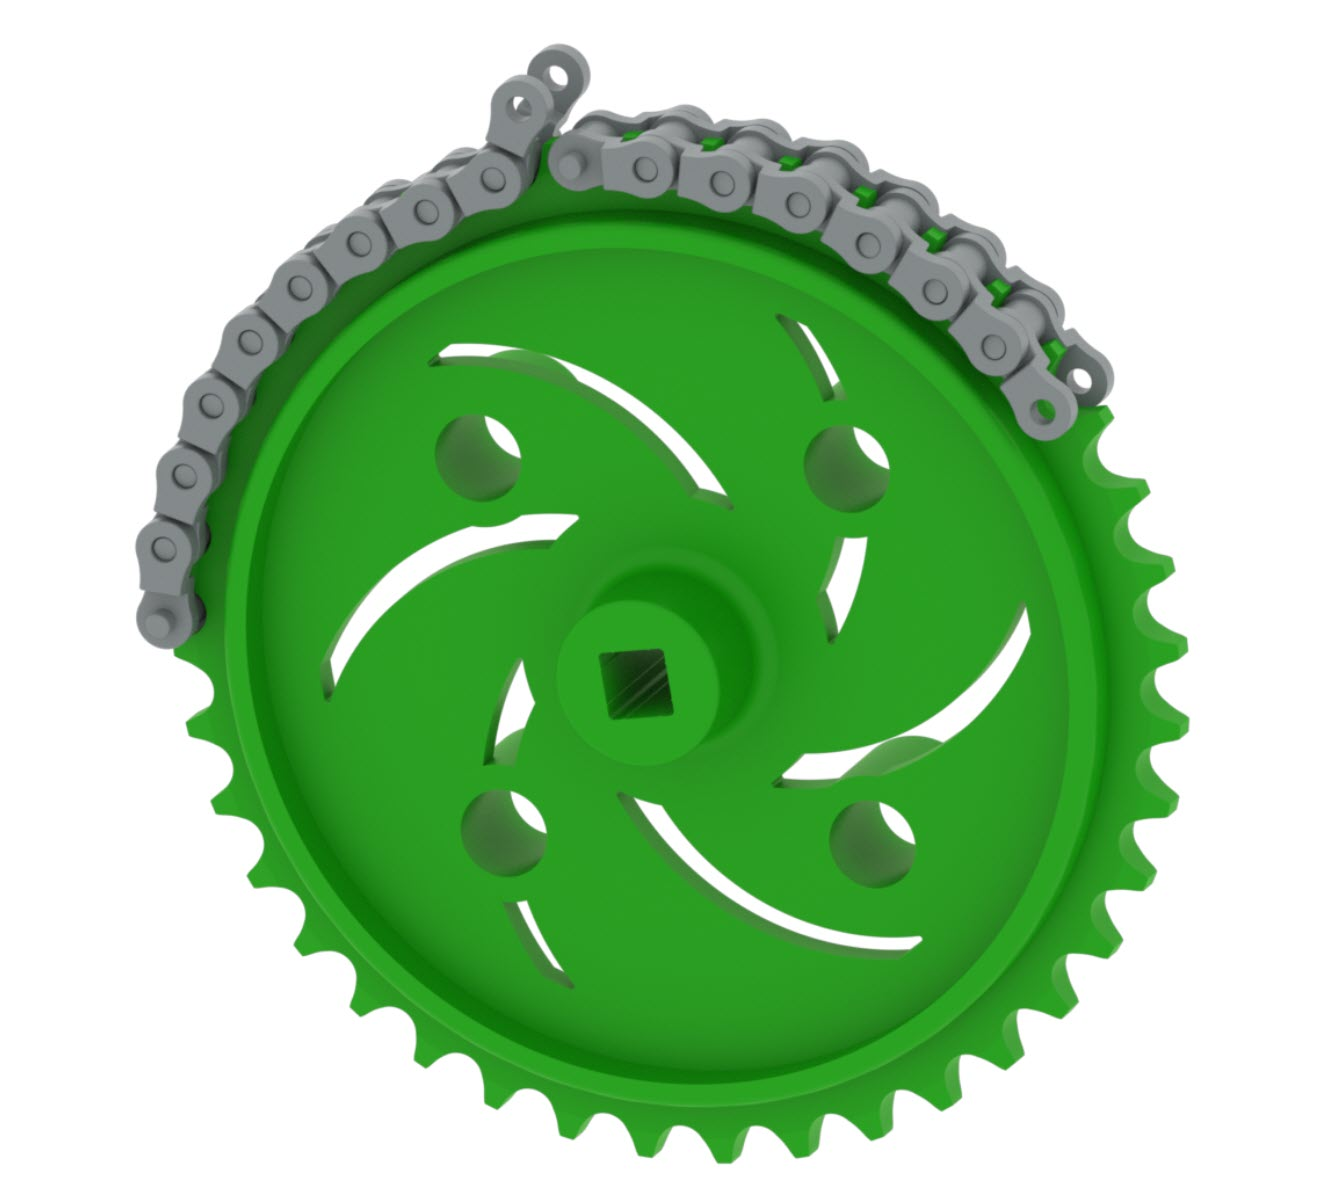 sprocket___chain.jpg